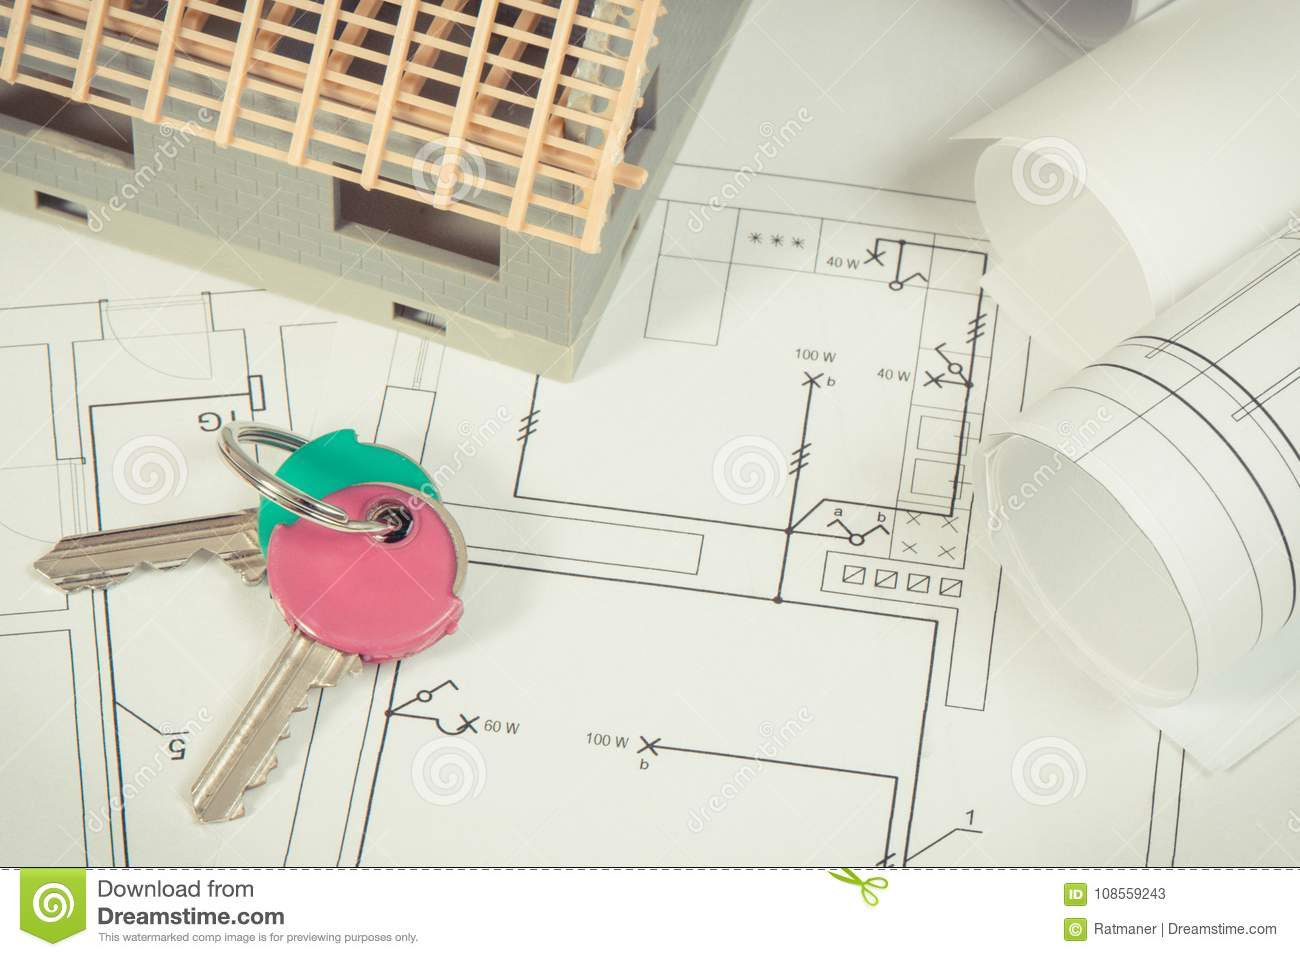 home keys, house under construction and electrical diagrams for engineer  jobs, building home concept